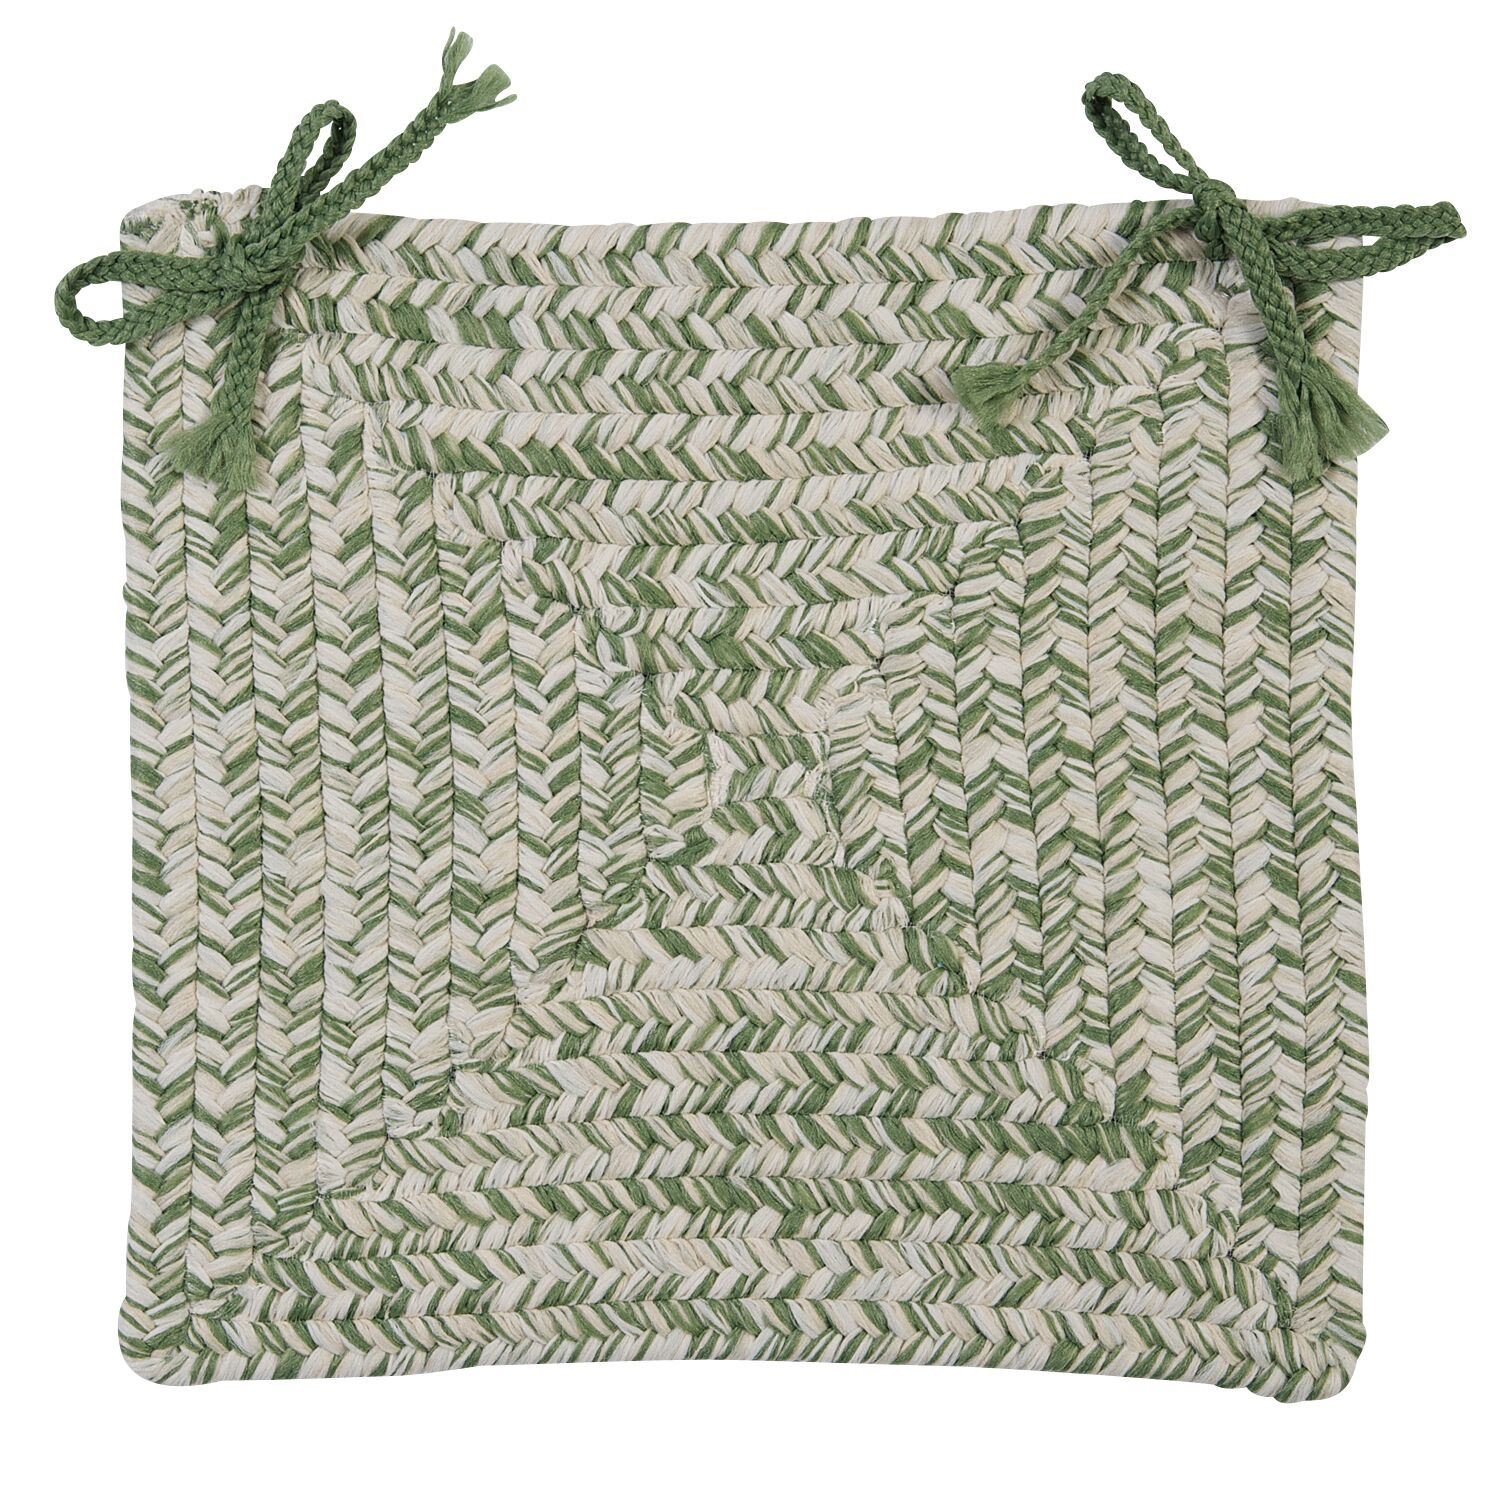 Dining Chair Cushion Color: Greenery